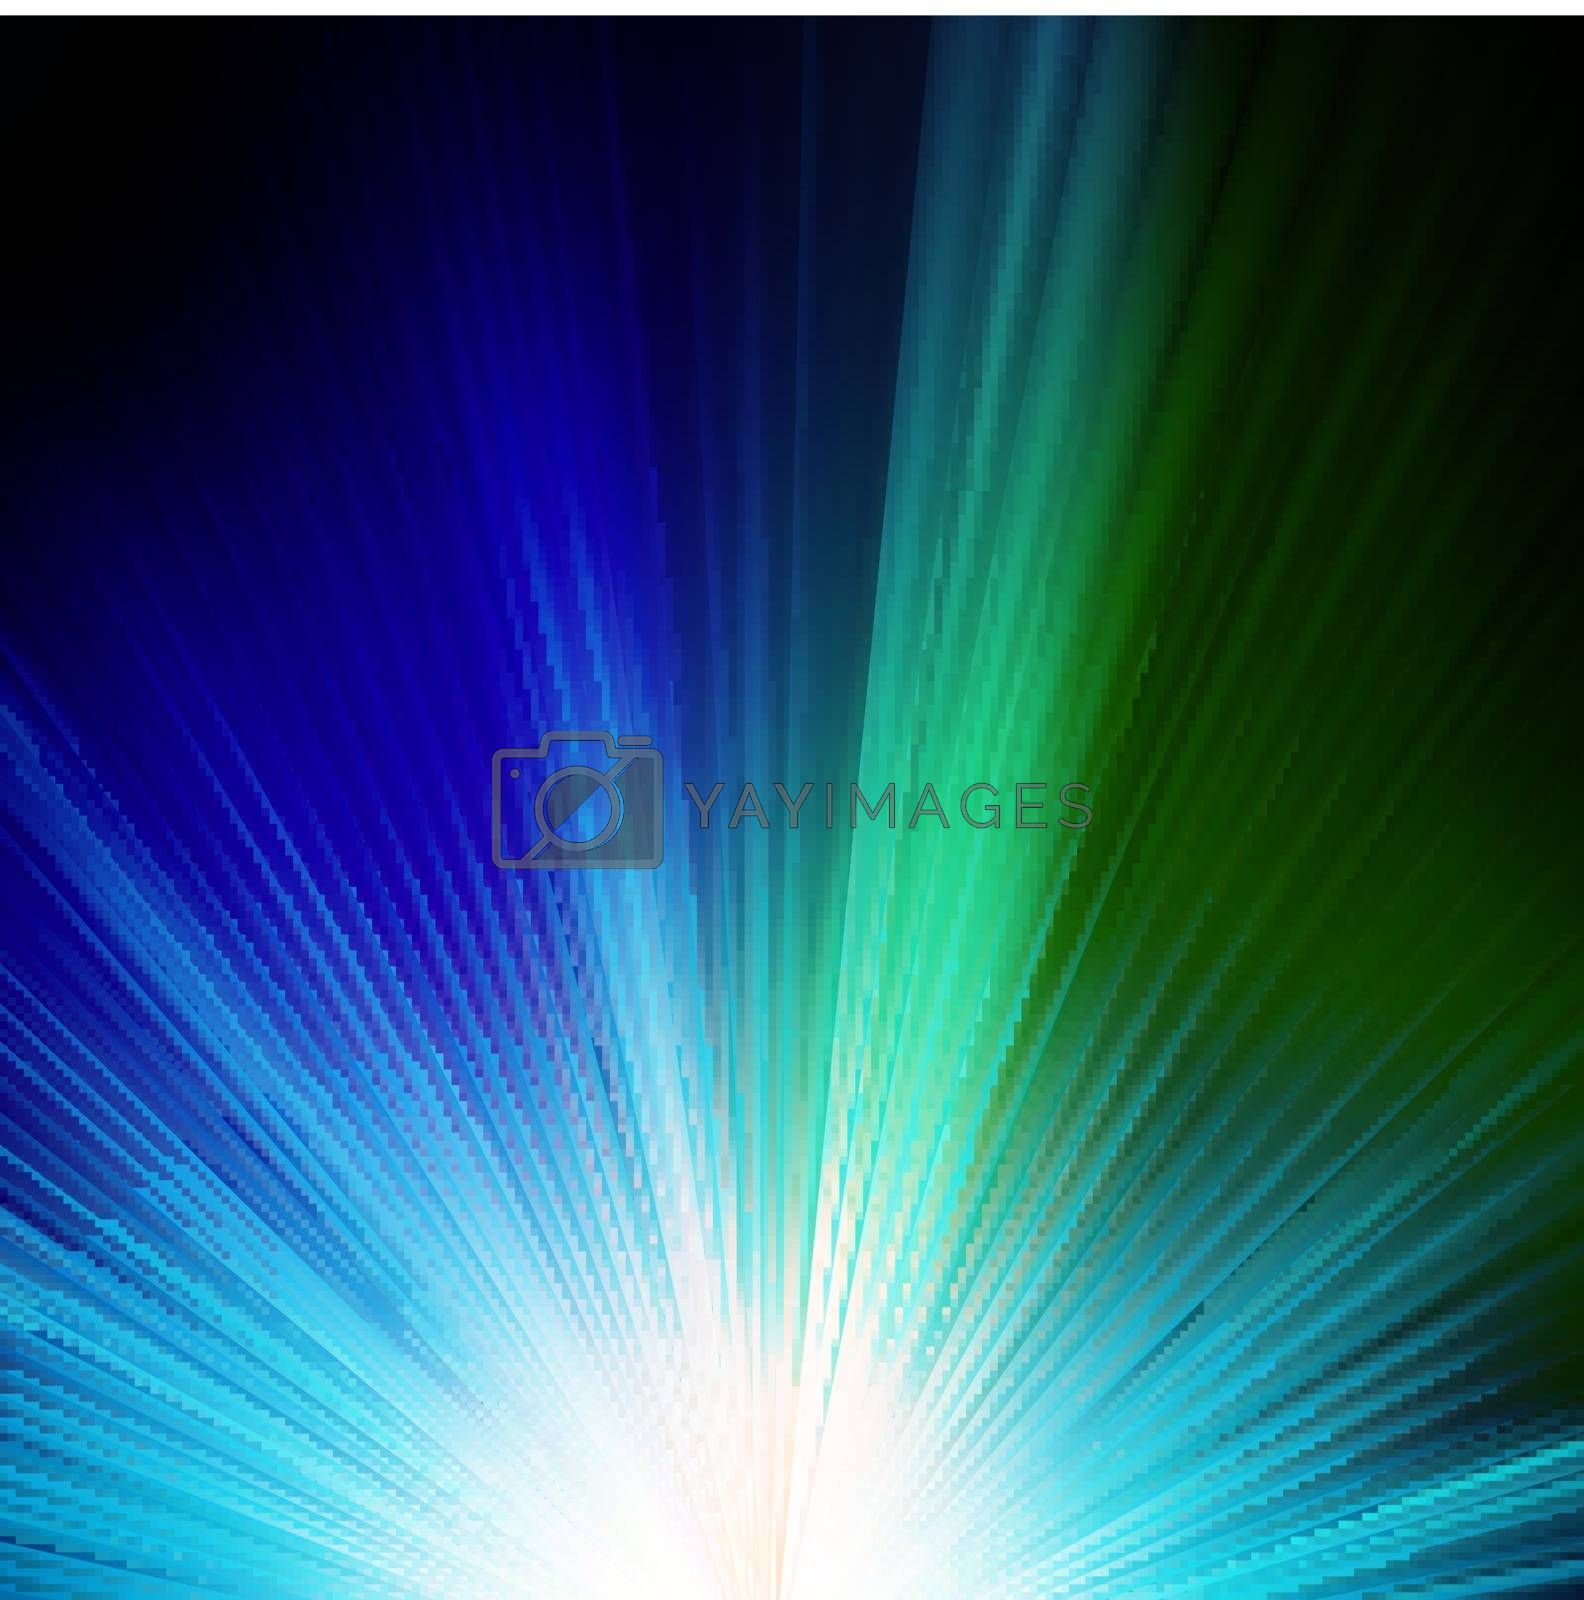 Abstract blue background. EPS 10 vector file included